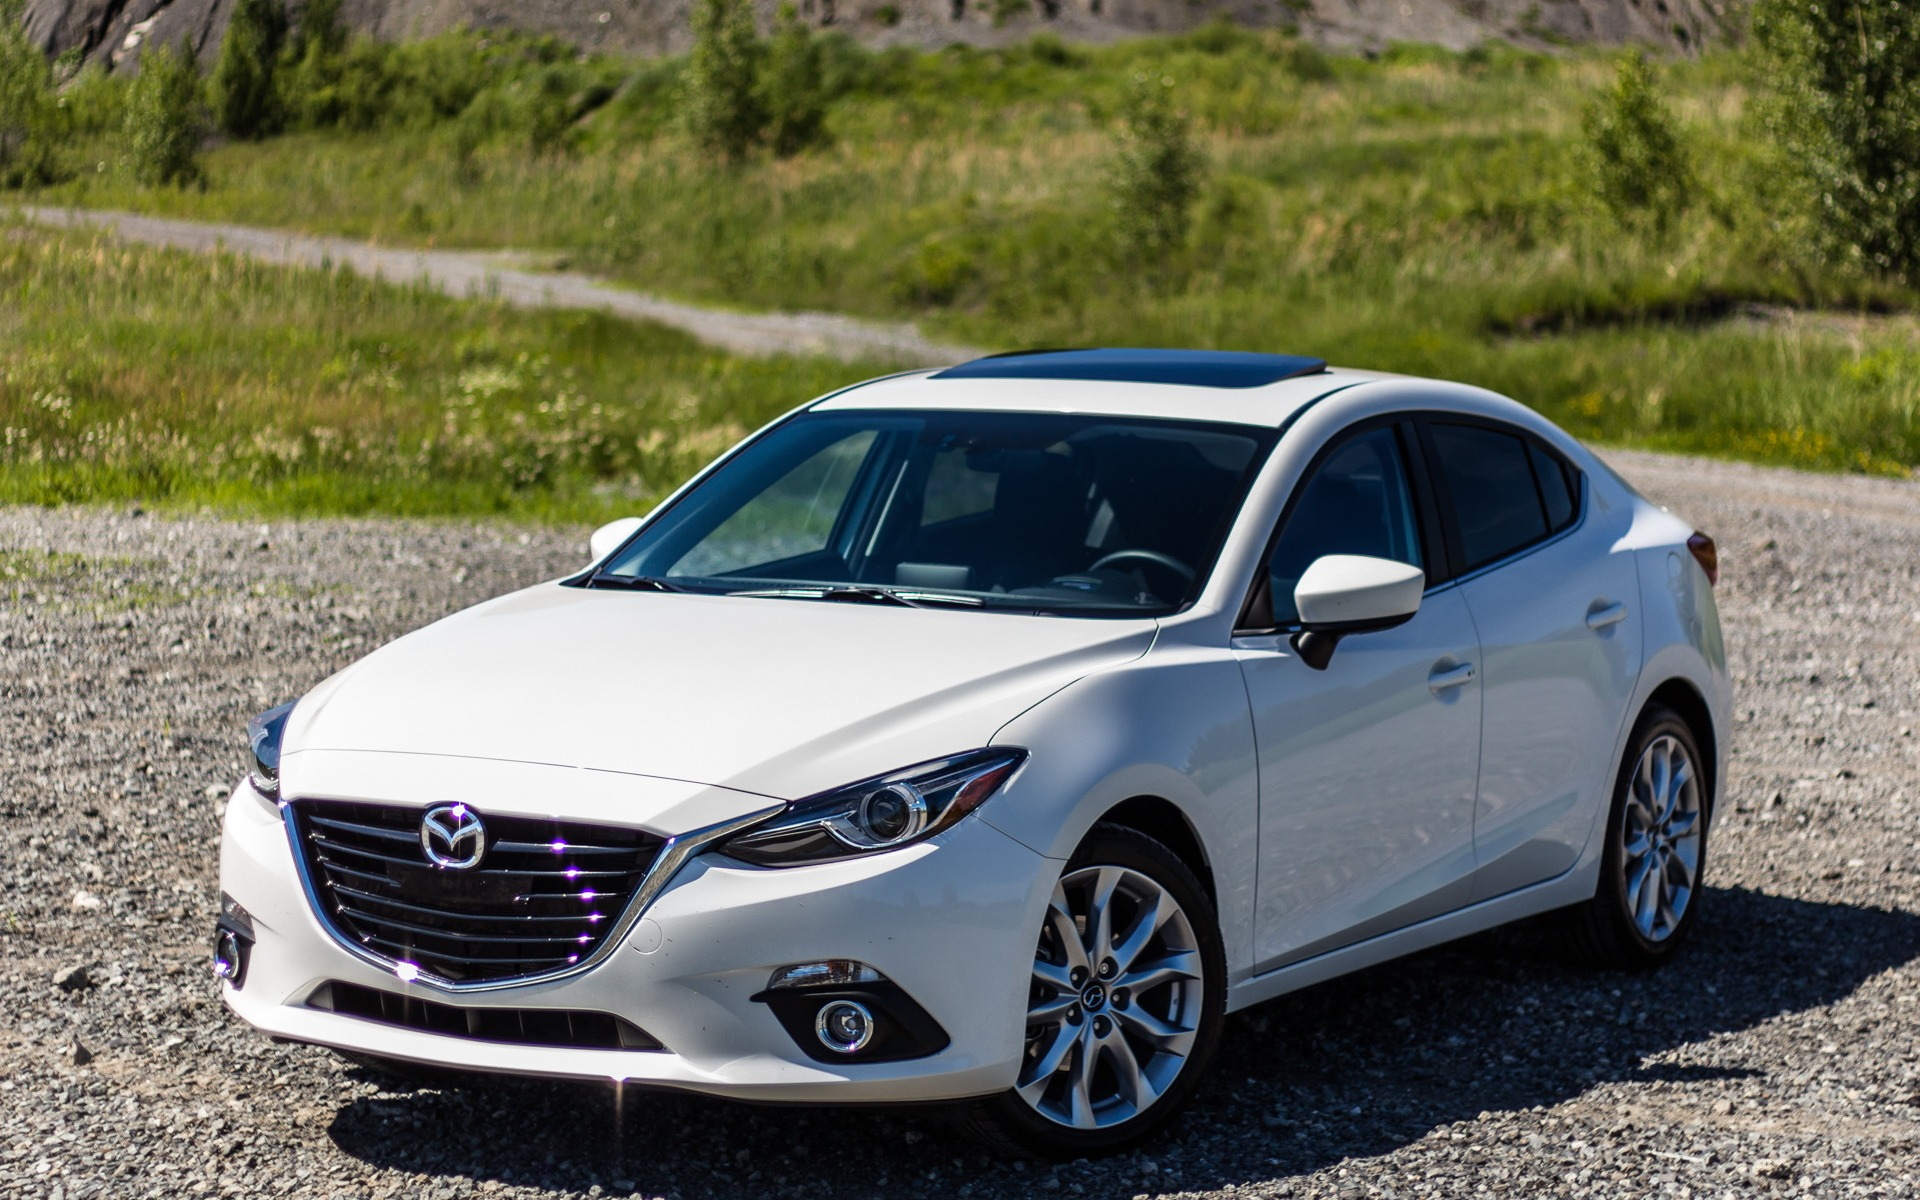 2016 Mazda Mazda3 News Reviews Picture Galleries And Videos 2011 3 Wiring Diagram The Car Guide